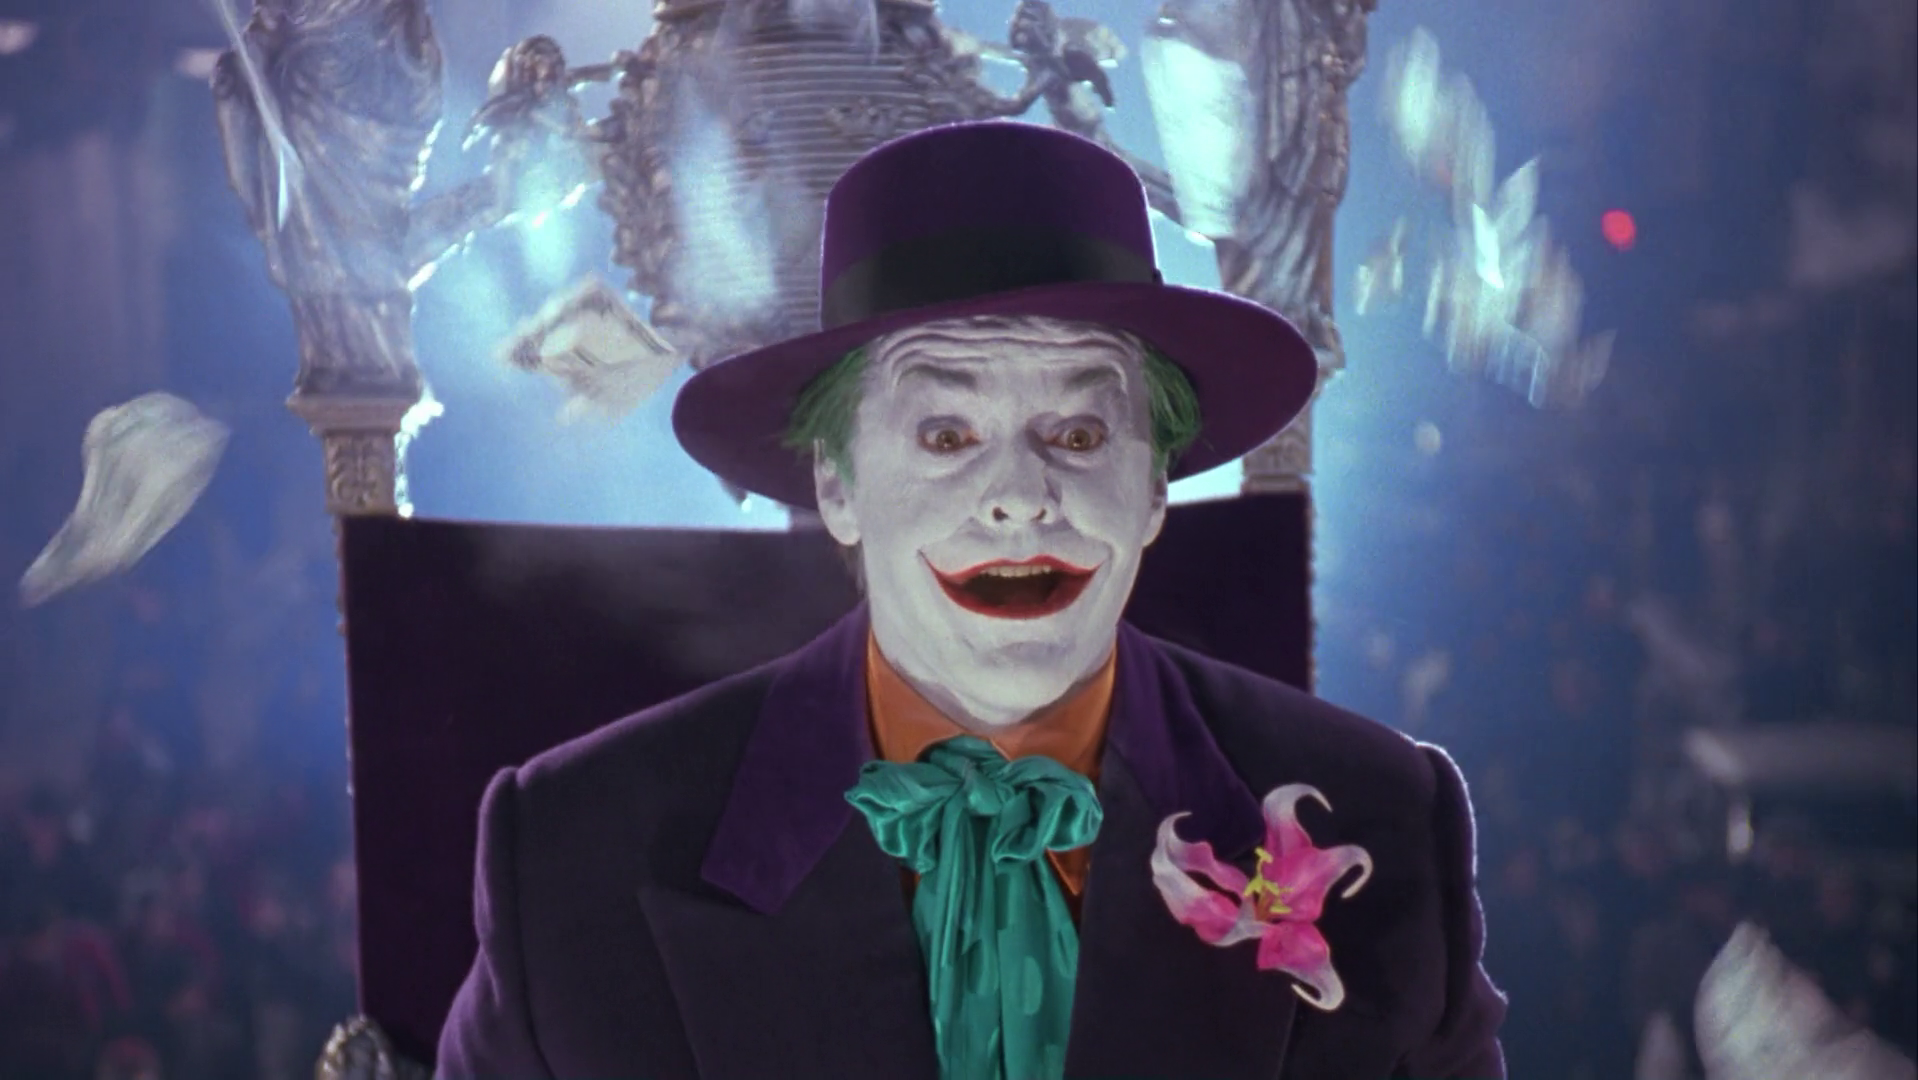 The Joker while riding on his parade during the festival, gives away ... Joker Smile Png